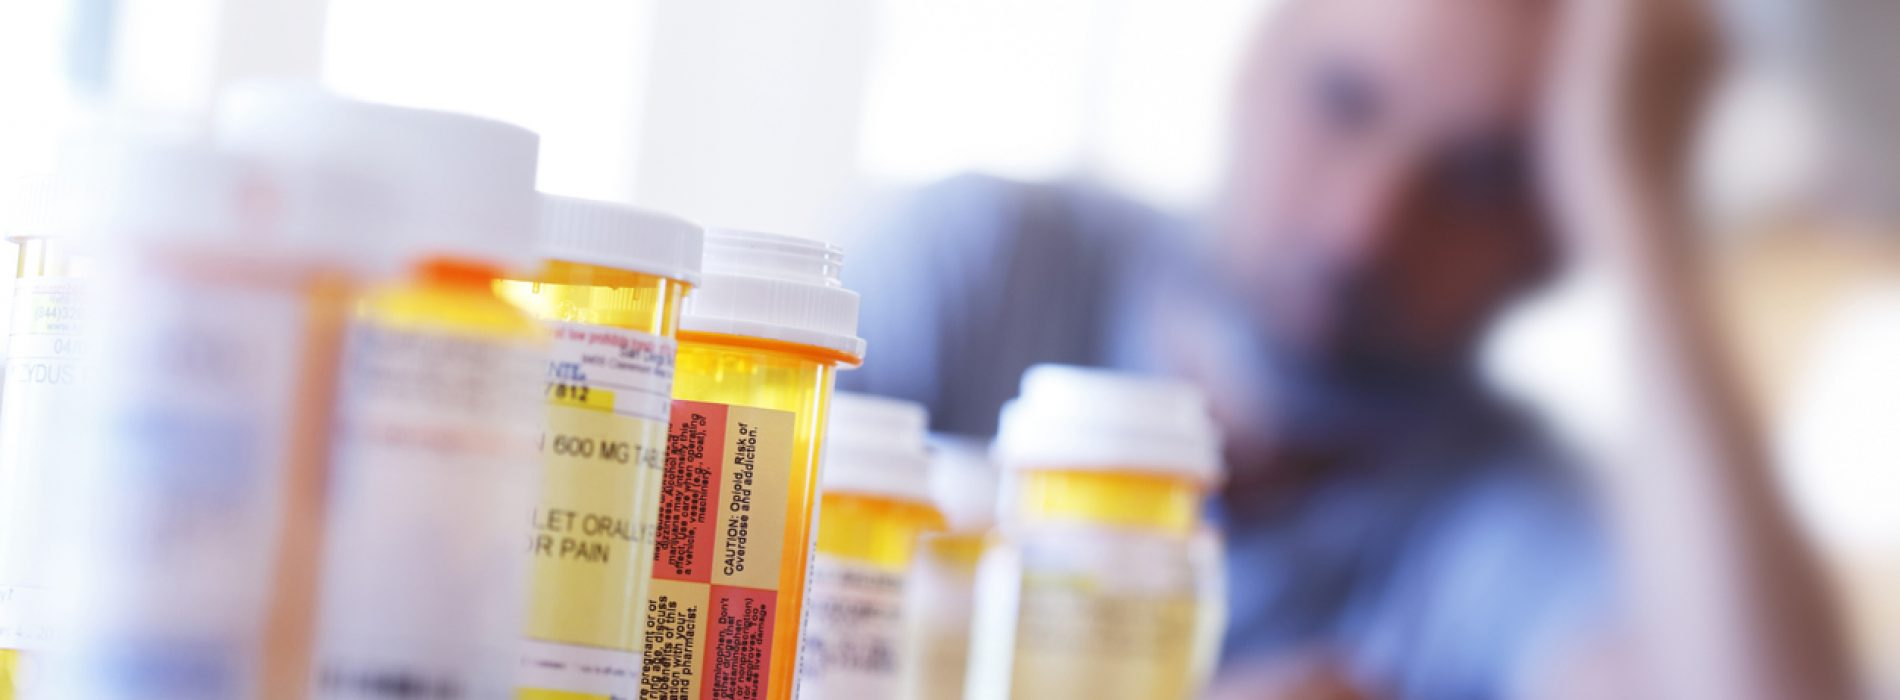 Myths about painkillers